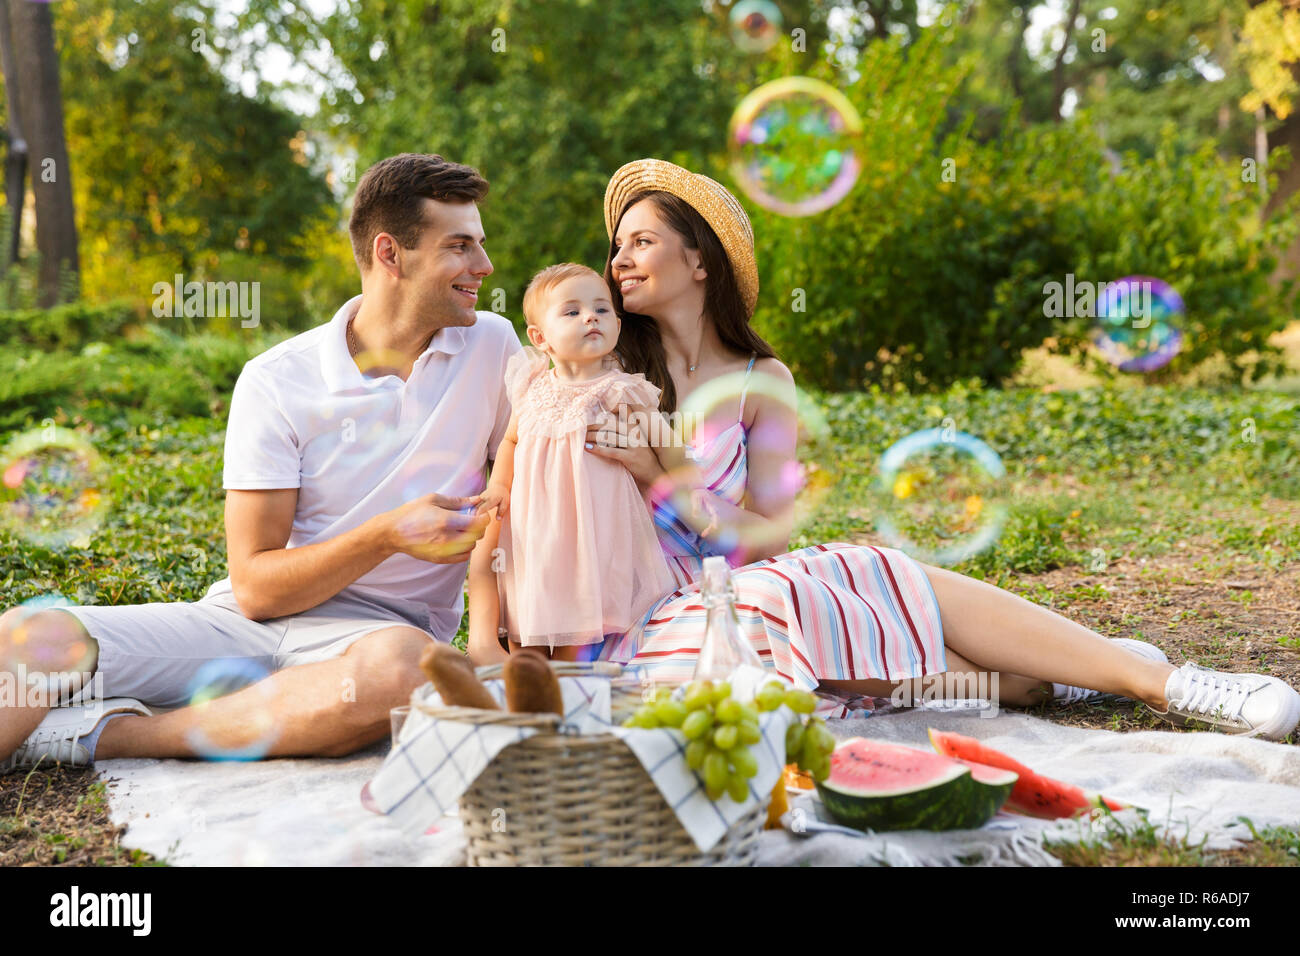 Positive young family with little baby girl spending time together at the park having a picnic